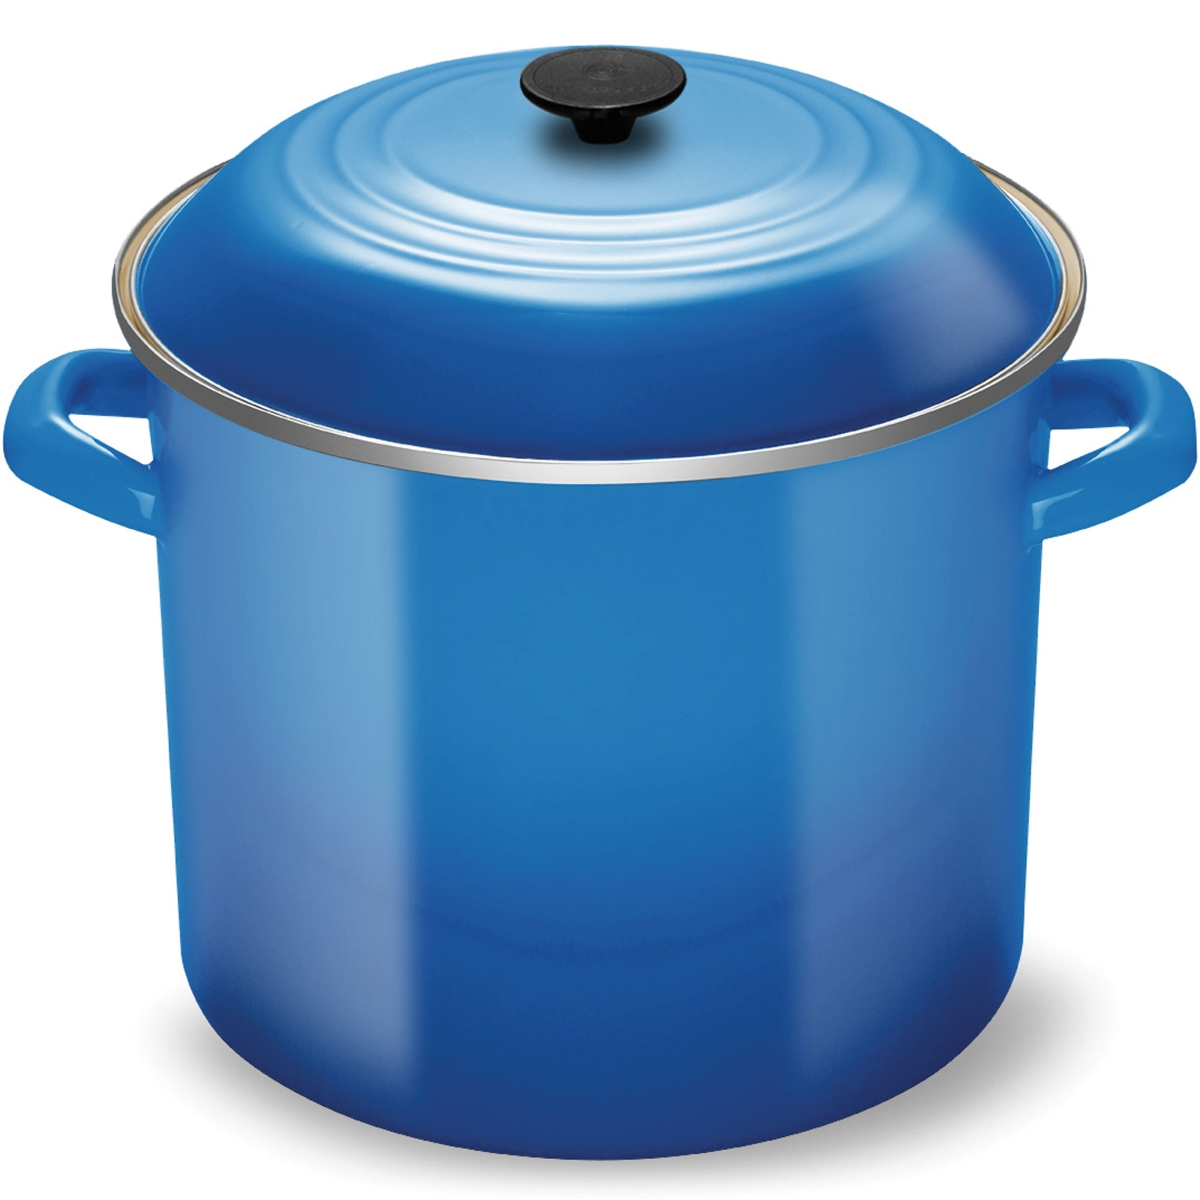 Le Creuset Enameled Steel 20-quart Marseille Stock Pot